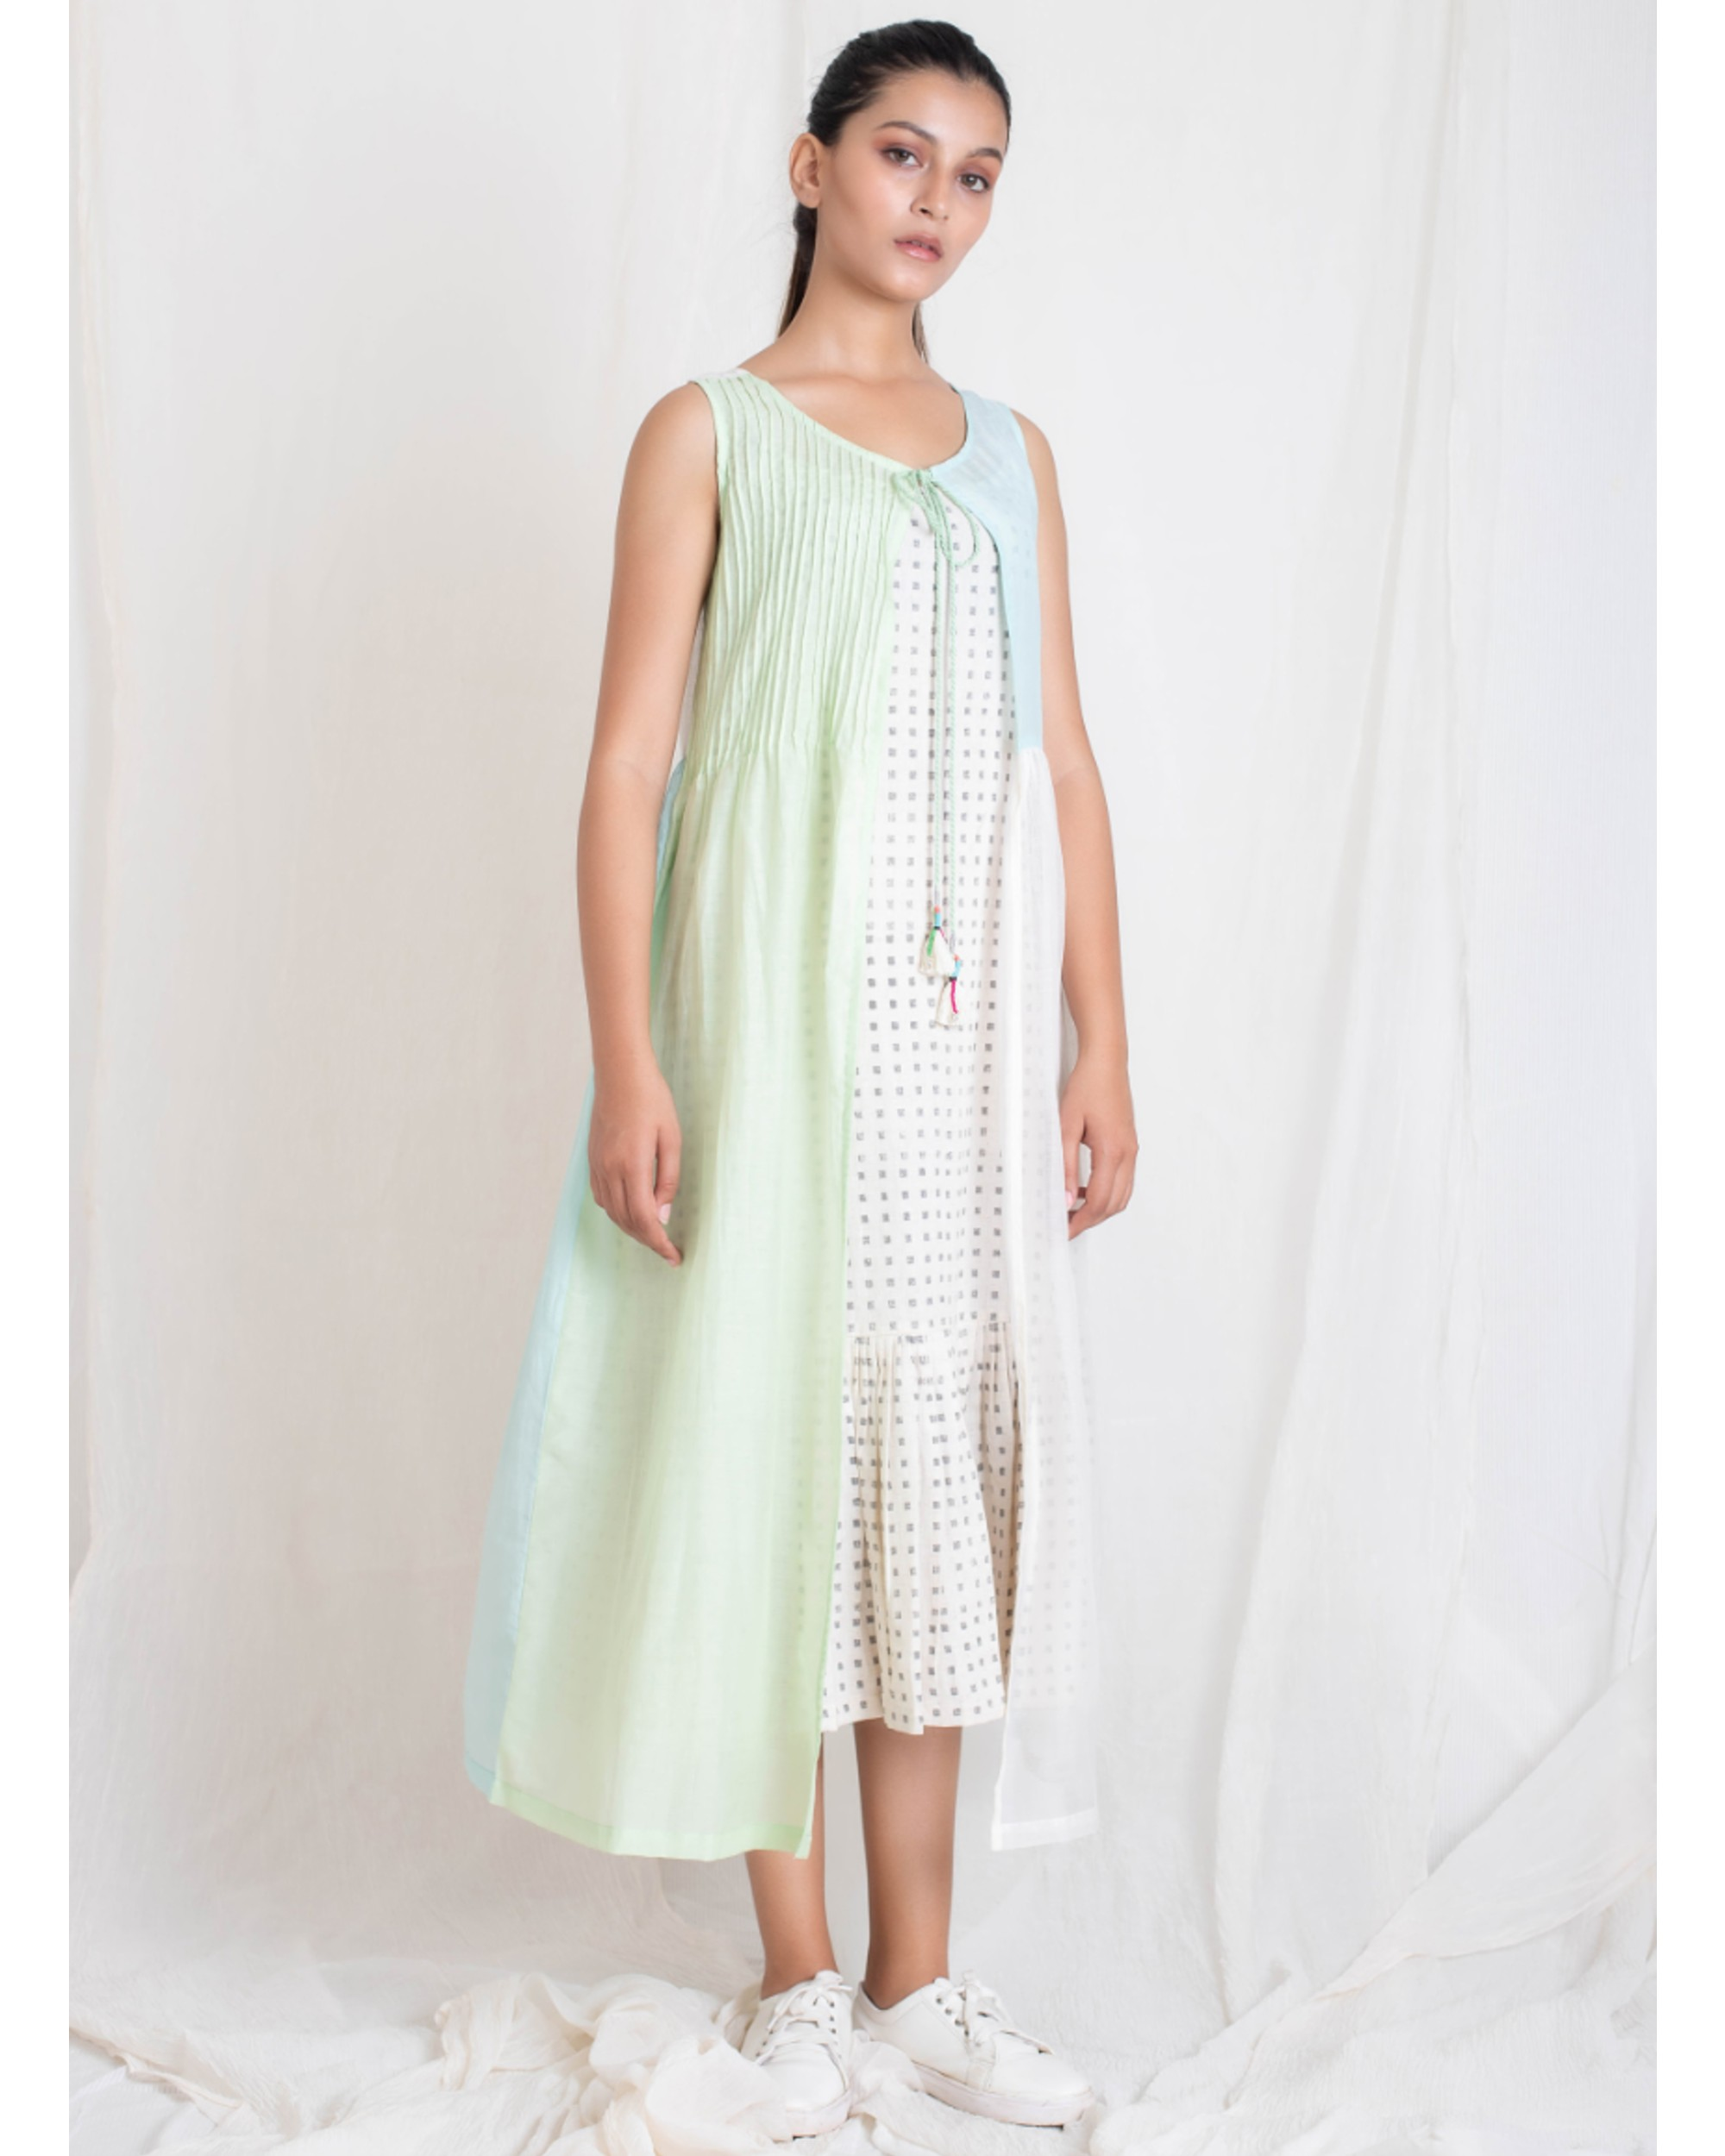 Aqua and light green panel jacket and tiered dress set- Set Of Two